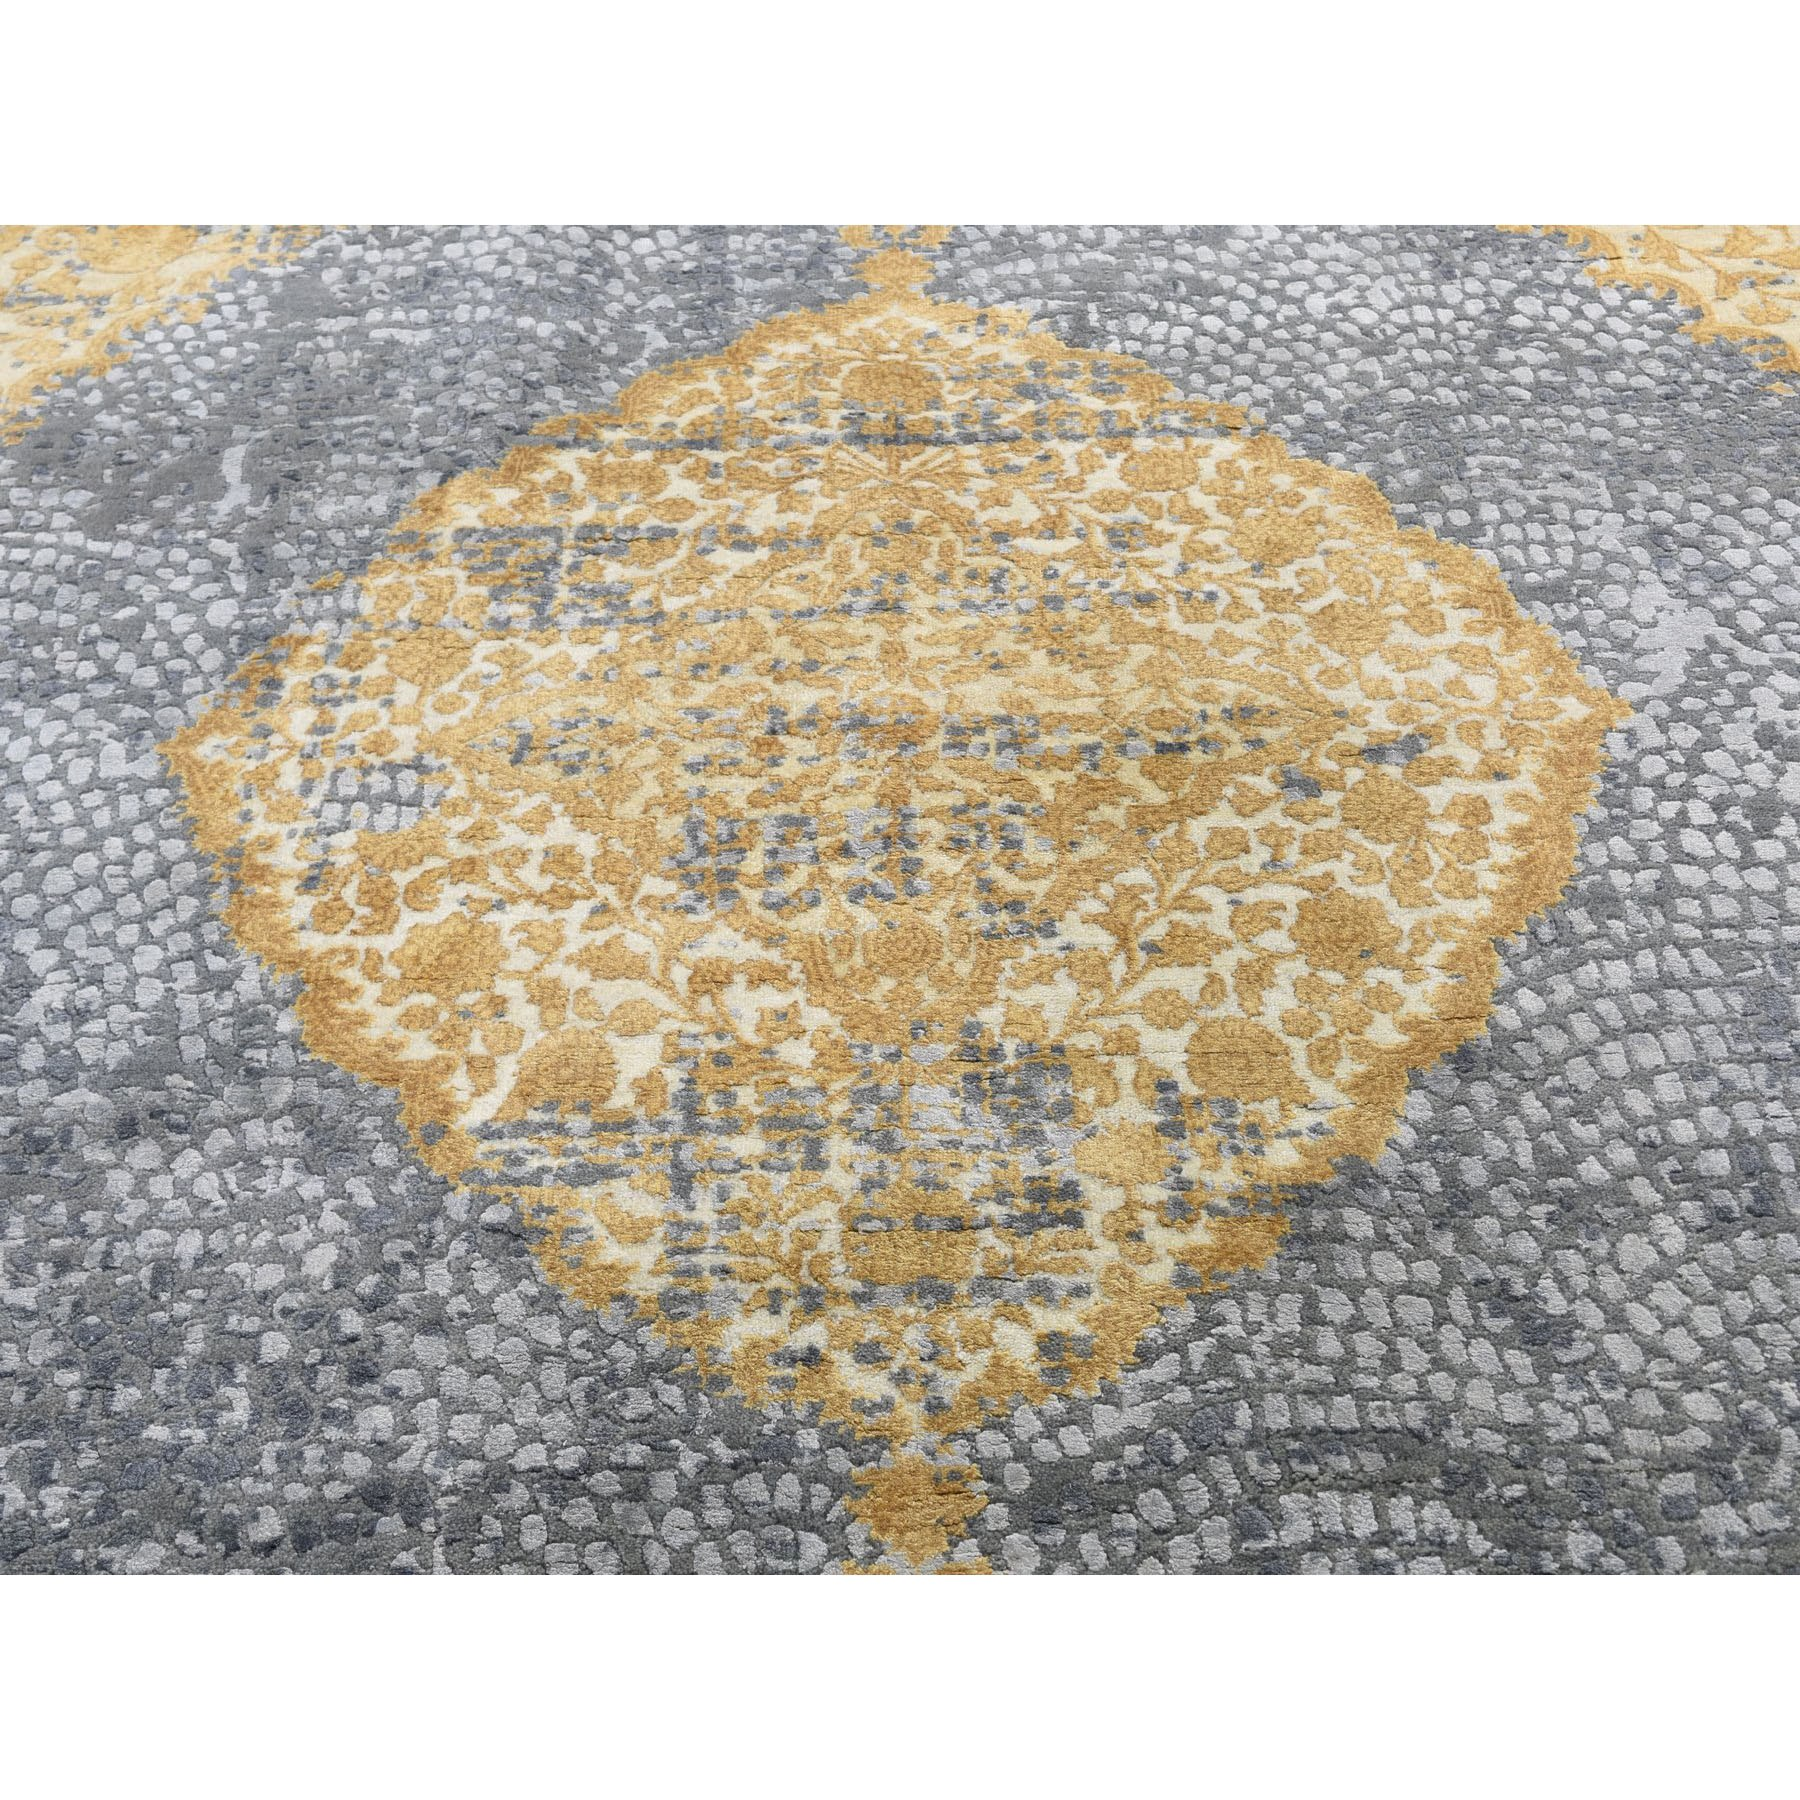 10'x10' Square Gold Persian Design Wool And Pure Silk Hand Knotted Oriental Rug